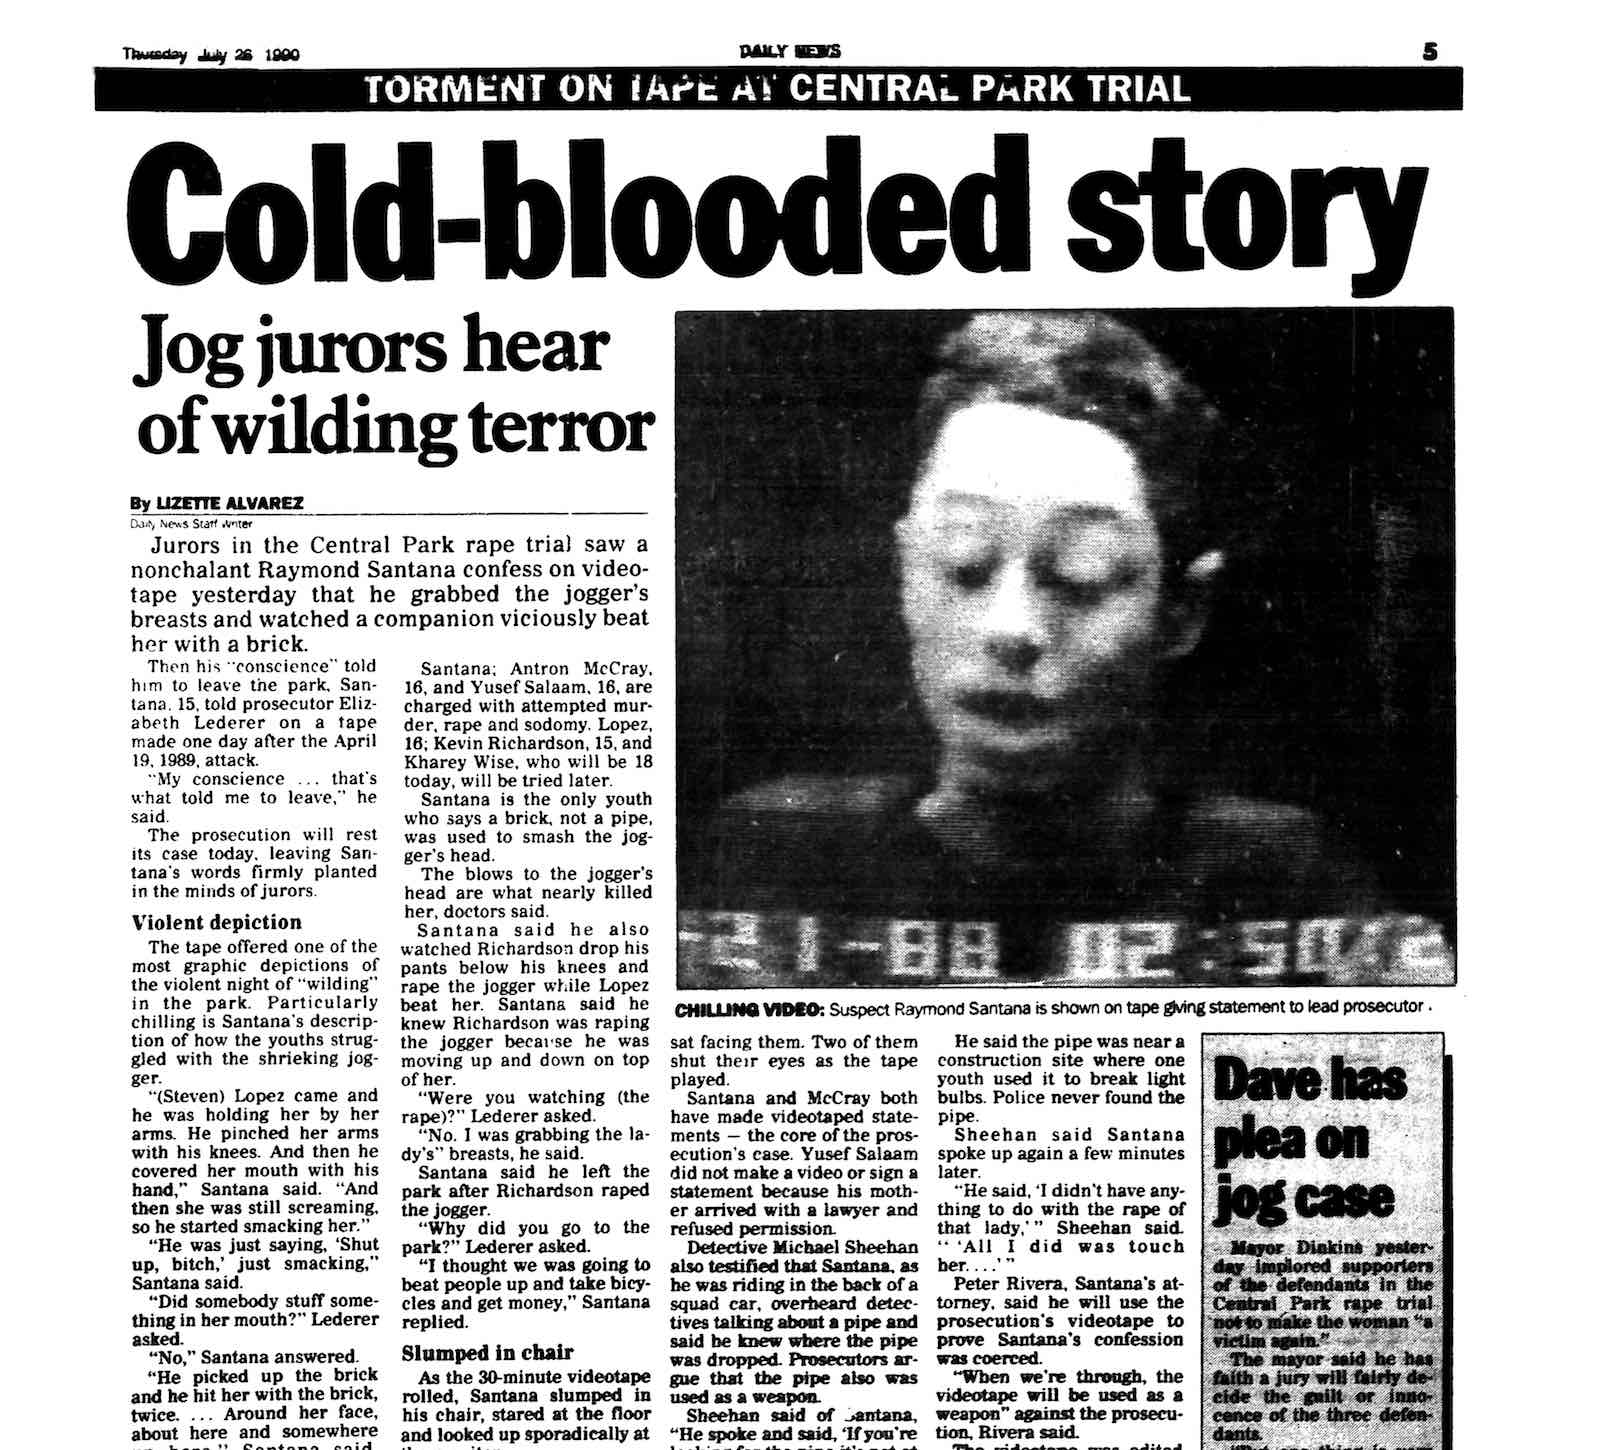 Page 3 coverage in the New York Daily News, 26 July 1990 (Photo: Getty Images)